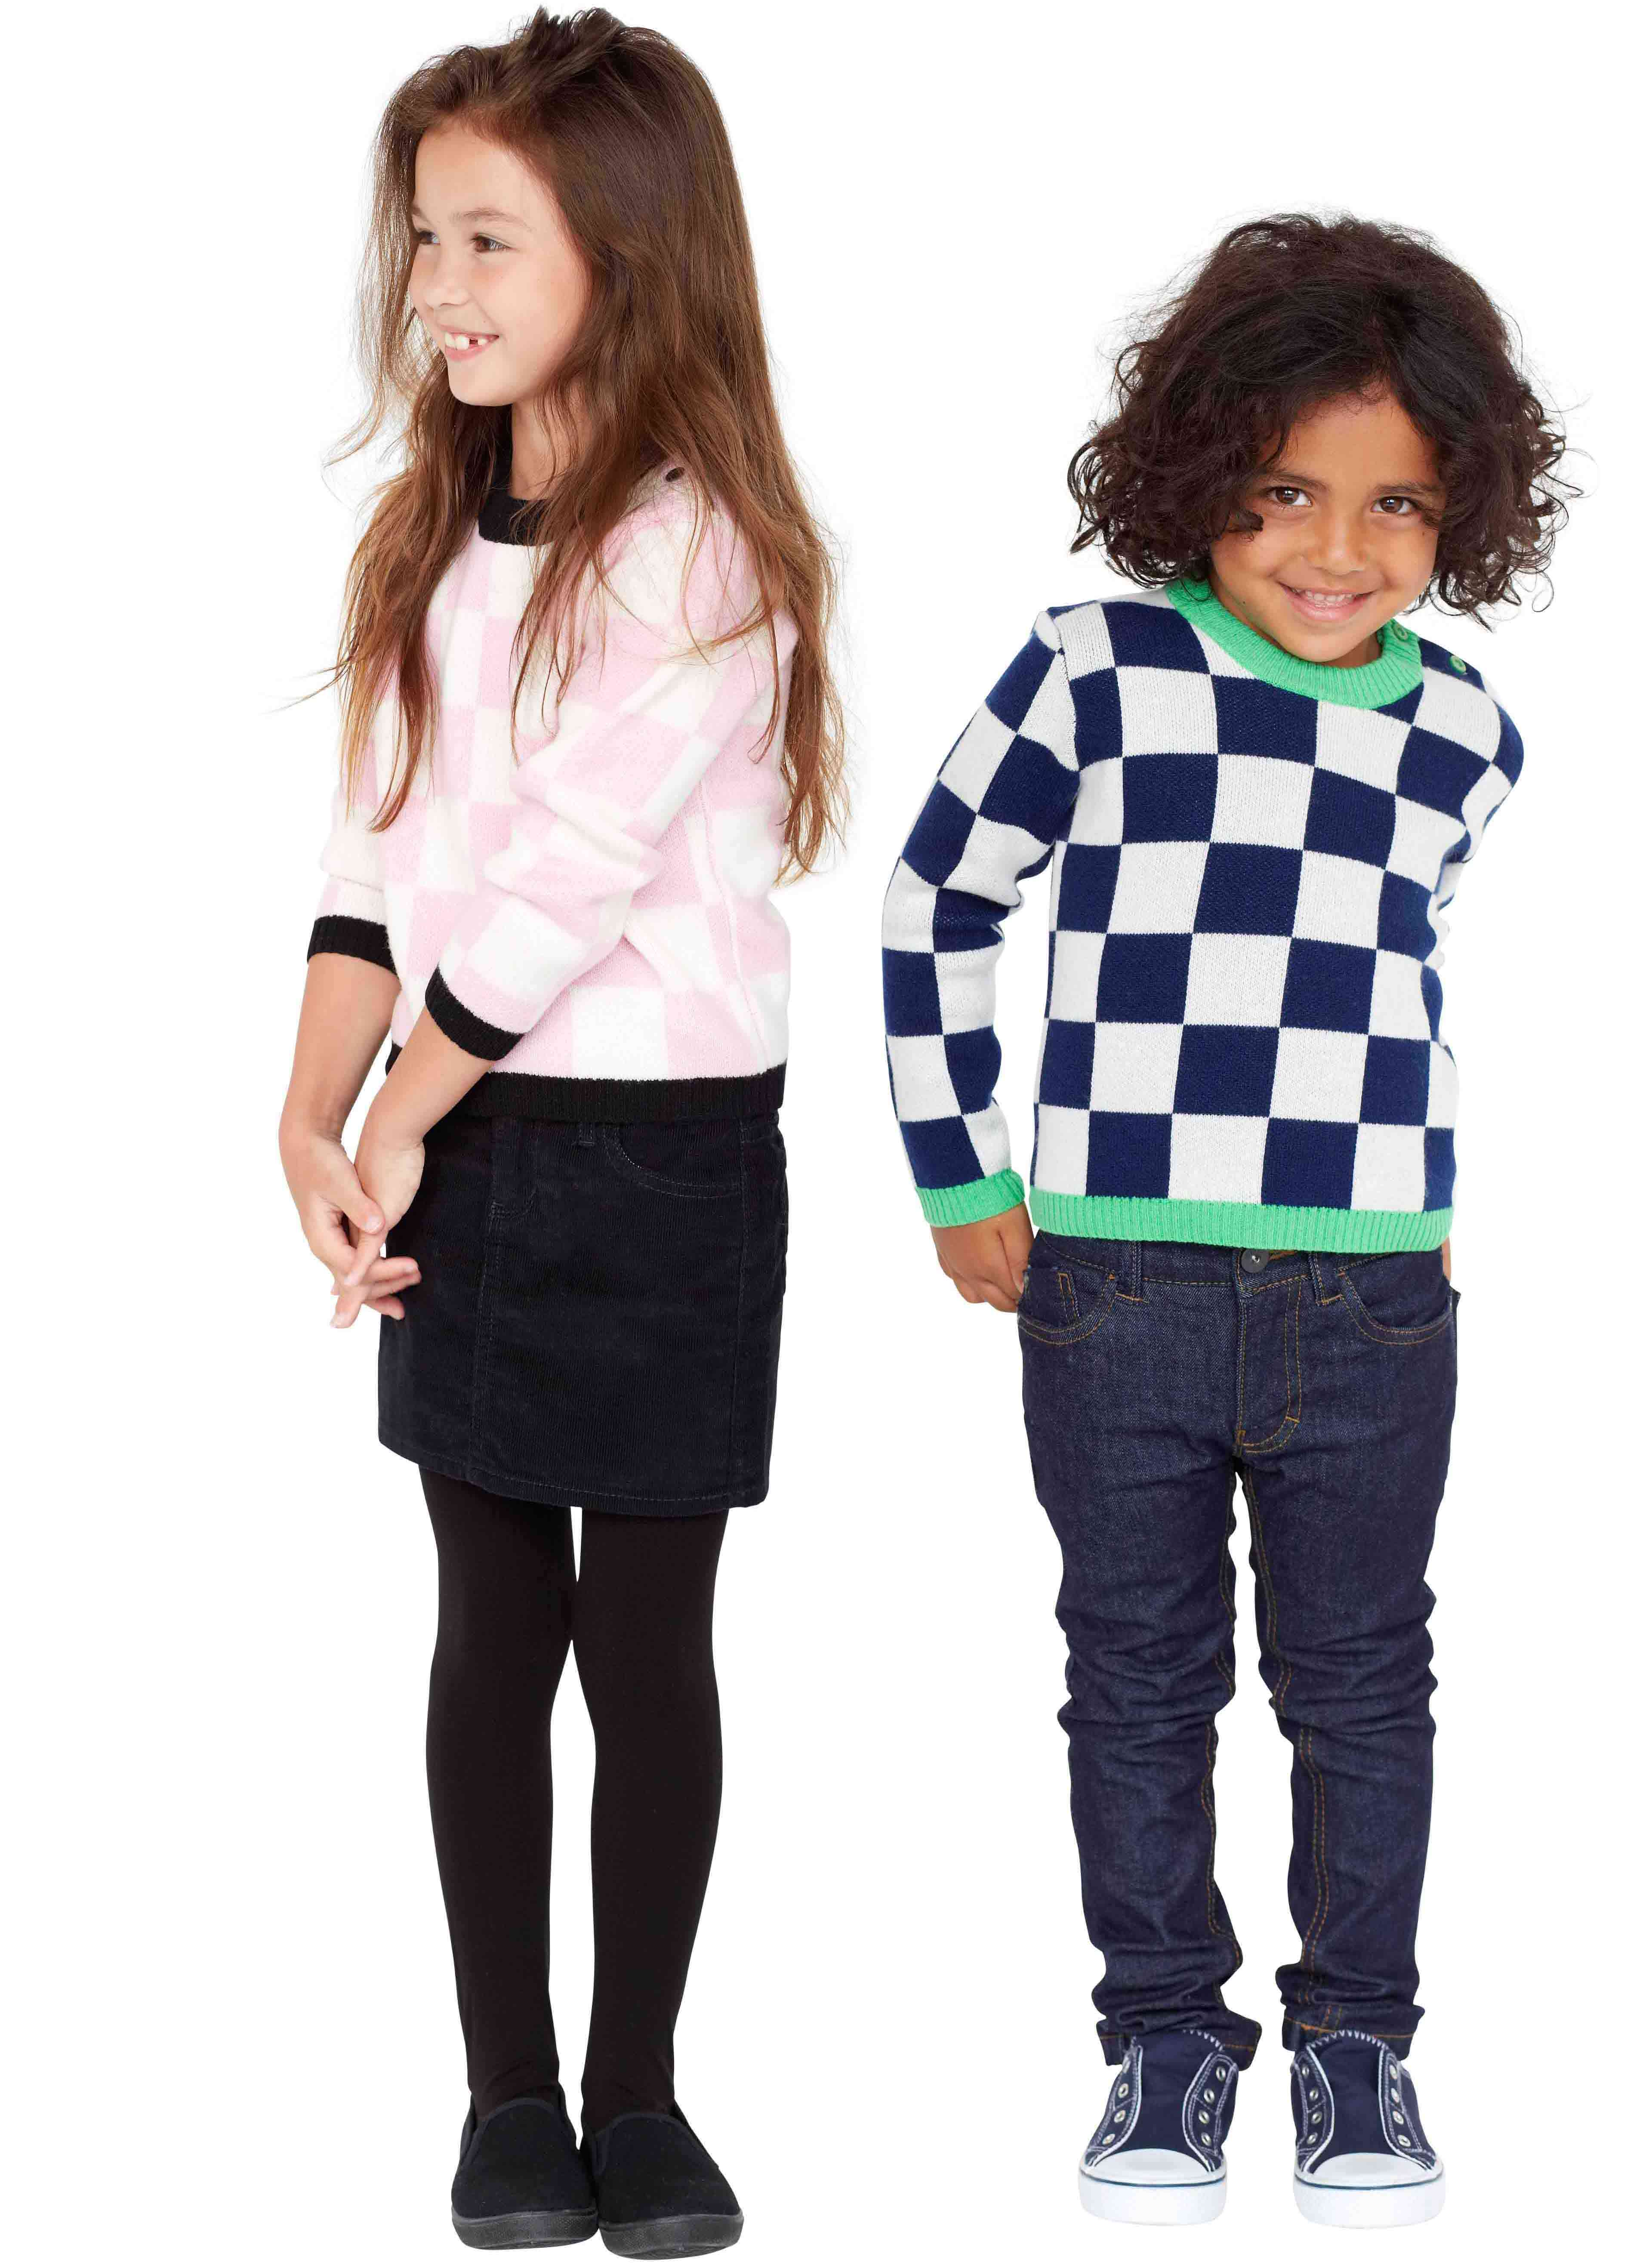 Atelier-Child_FW15_The-Check-Sweaters_Hi-Res_Deepetched